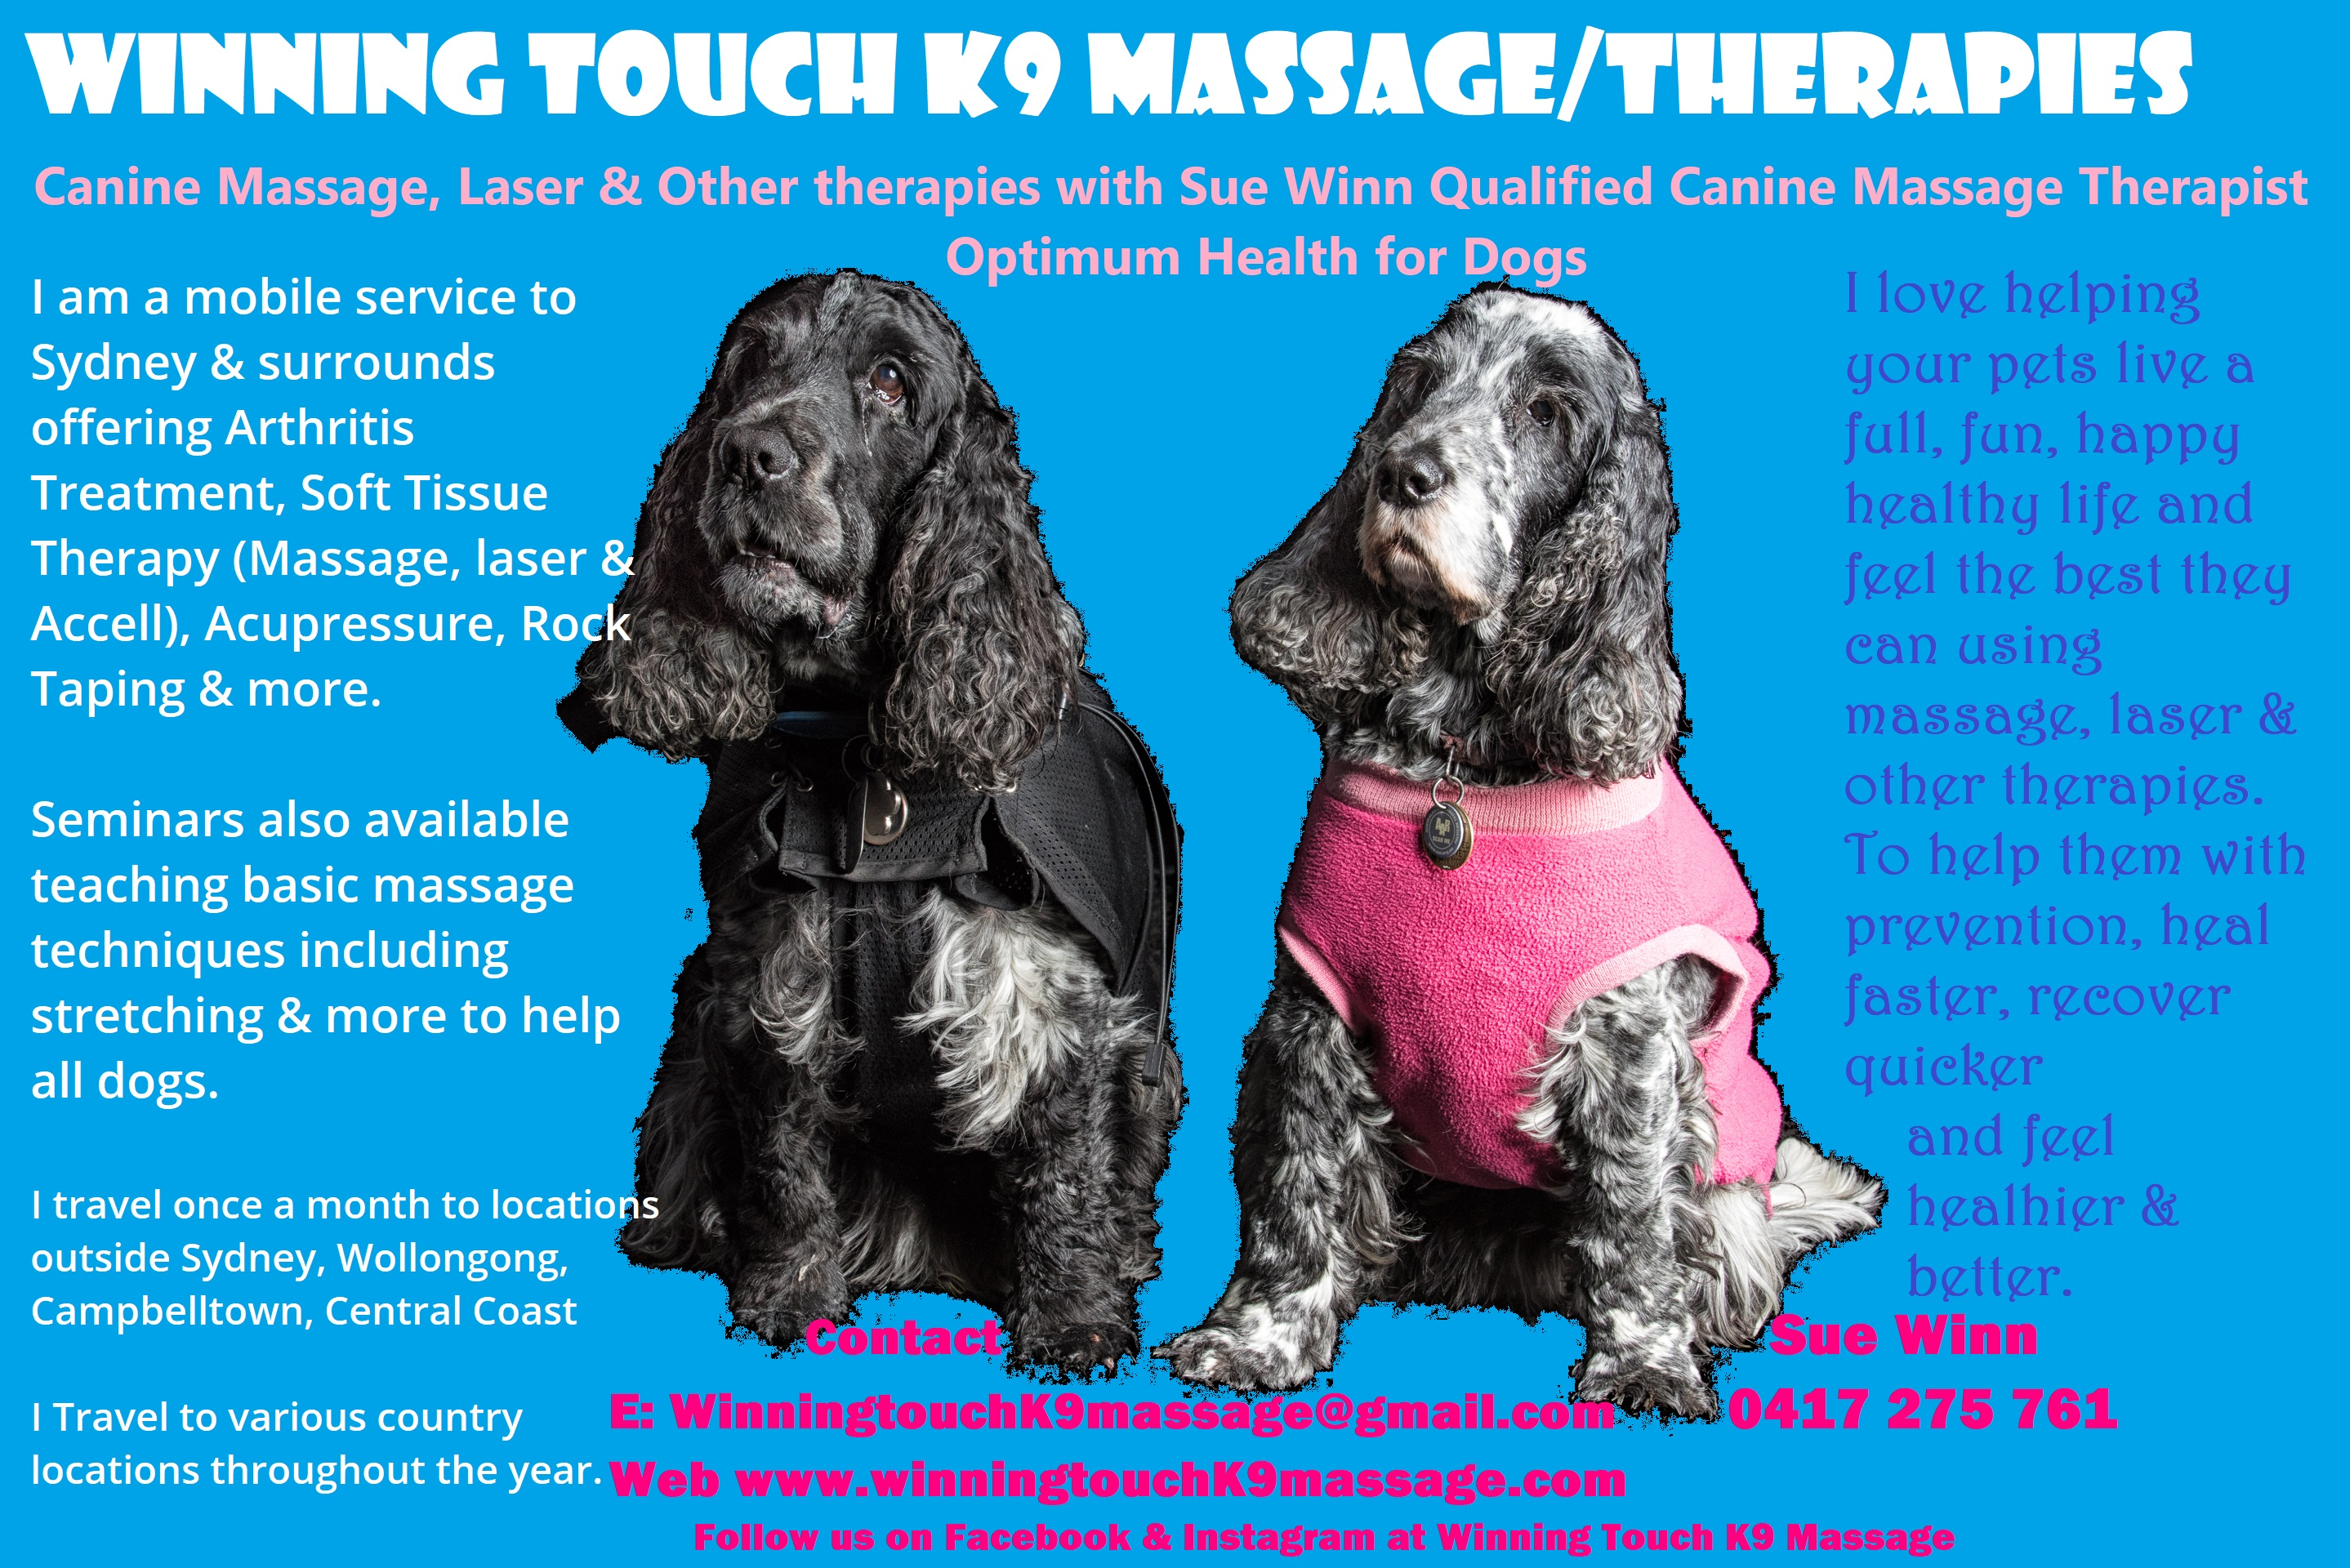 Winning touch K9 massage photo